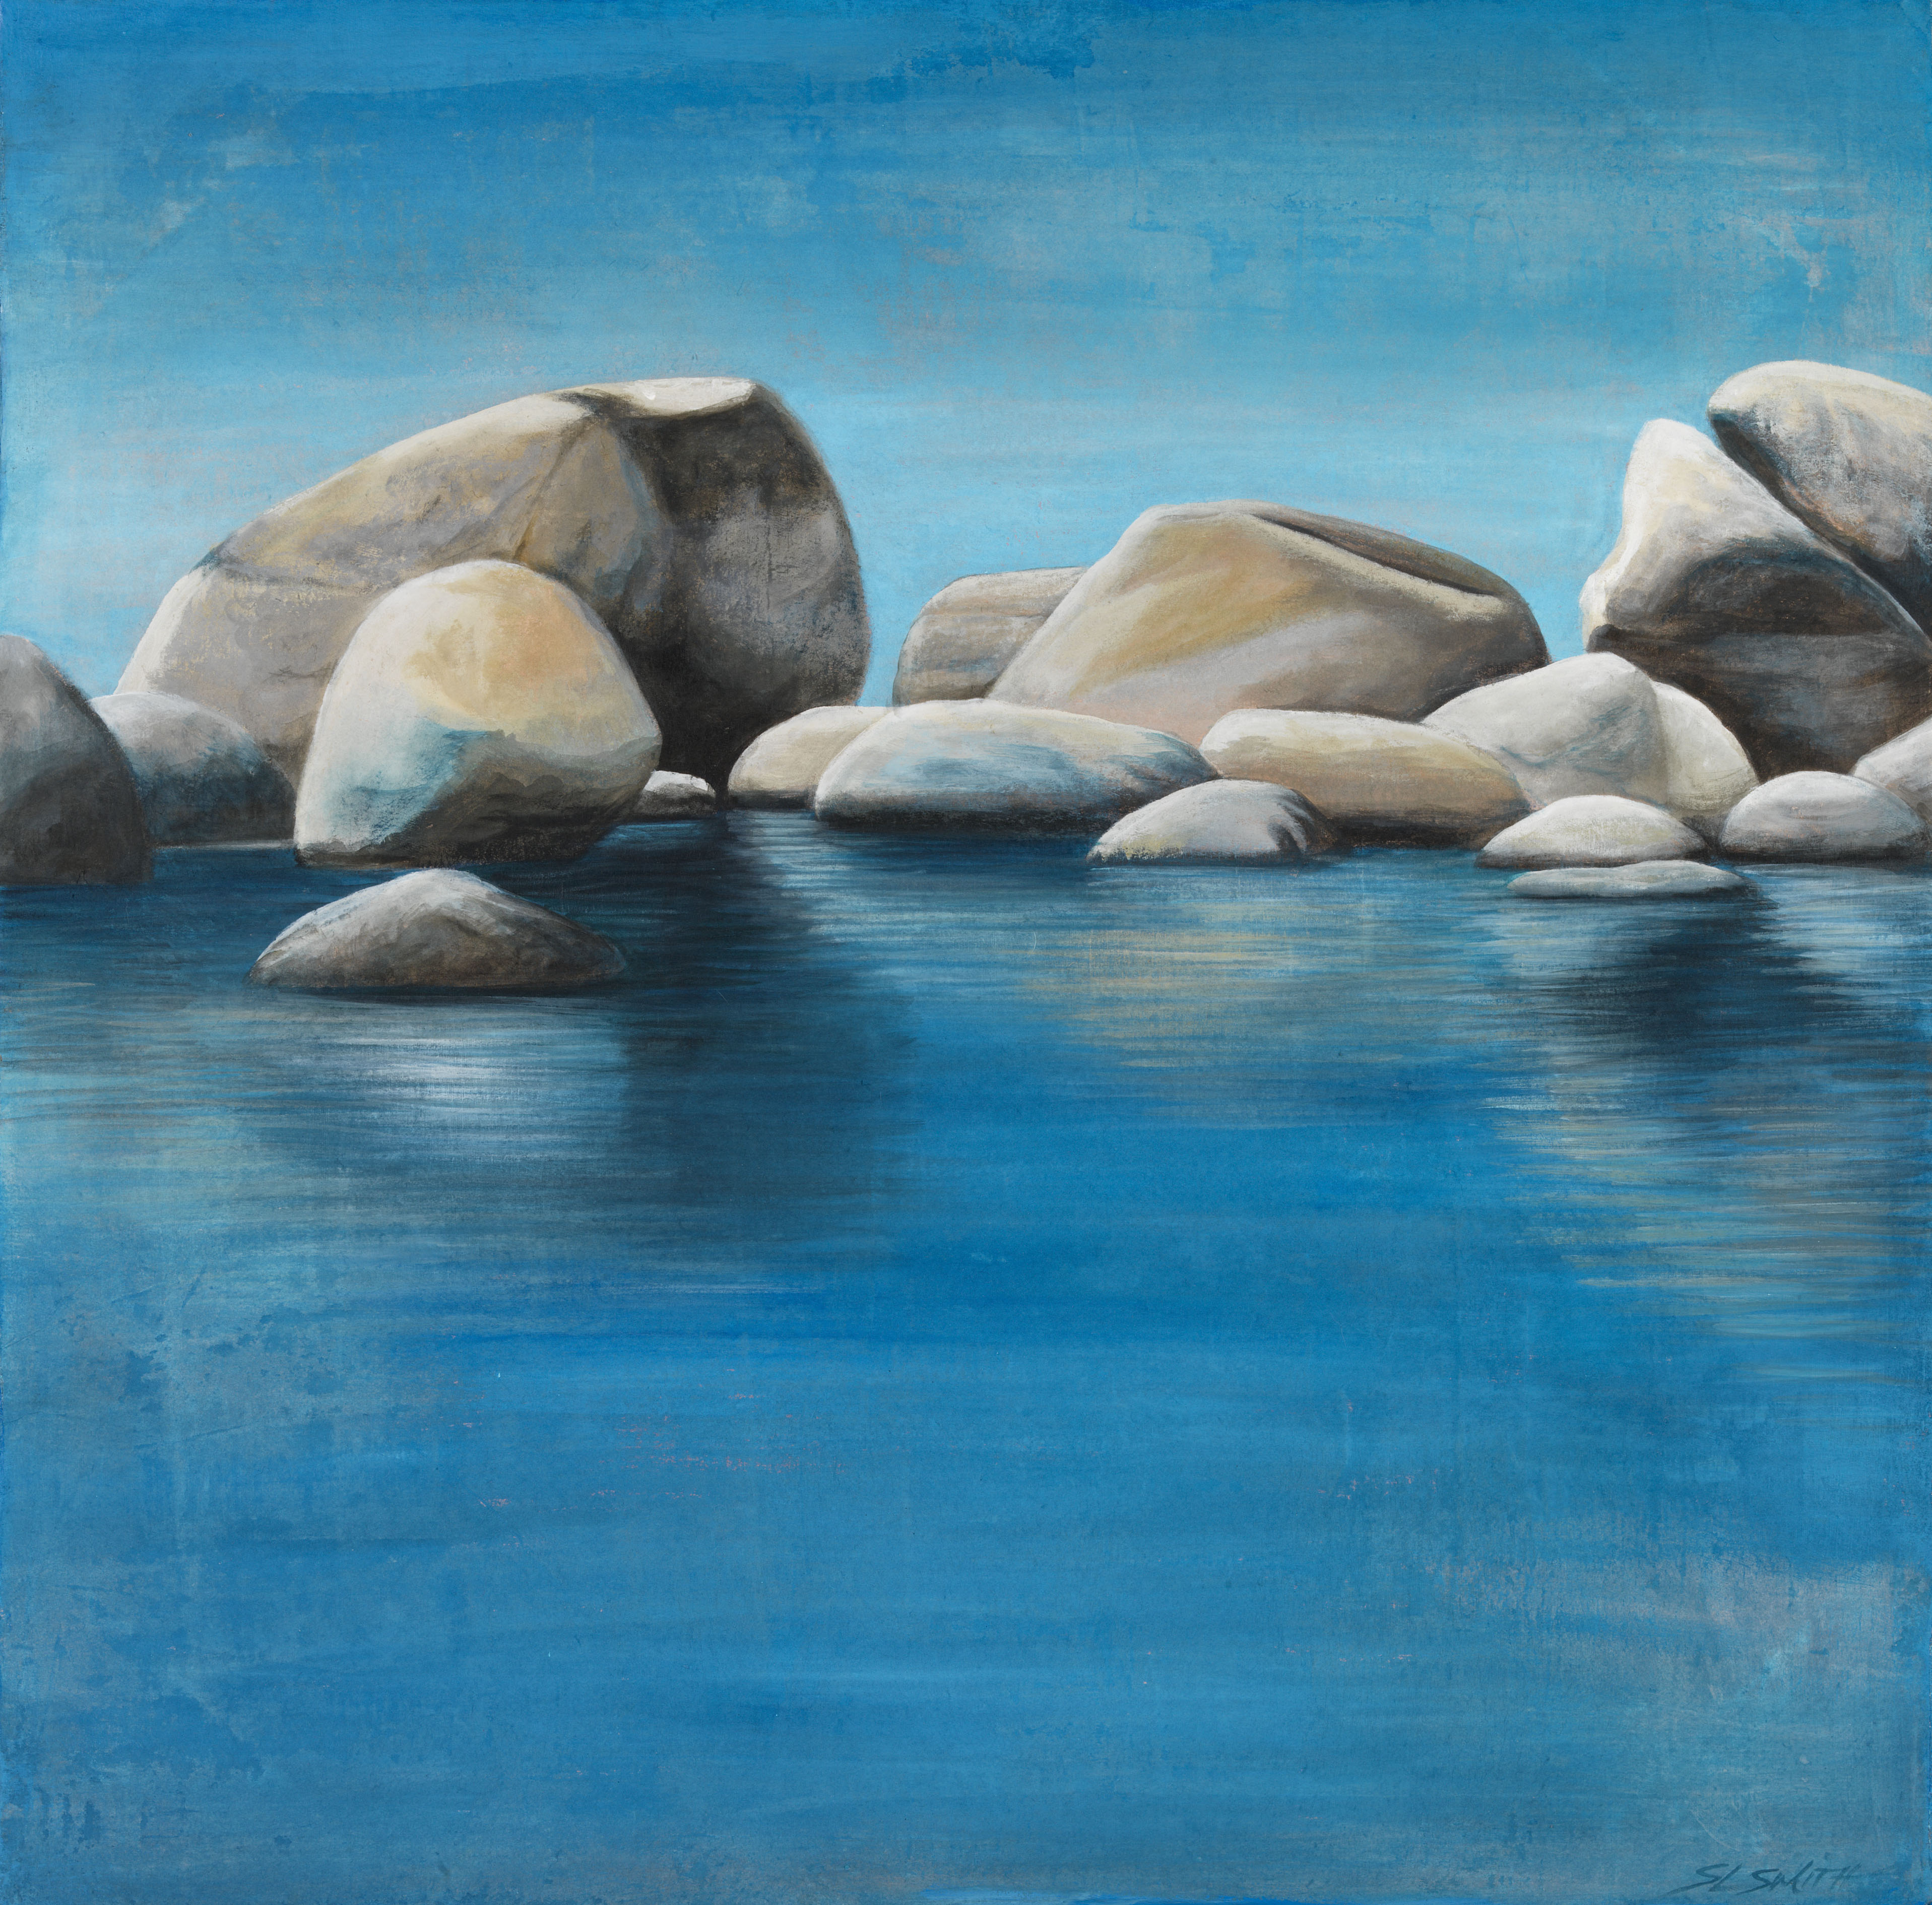 Tahoe Reflections - Truckee and Lake Tahoe fine artist landscape painter nature painting sky boulders